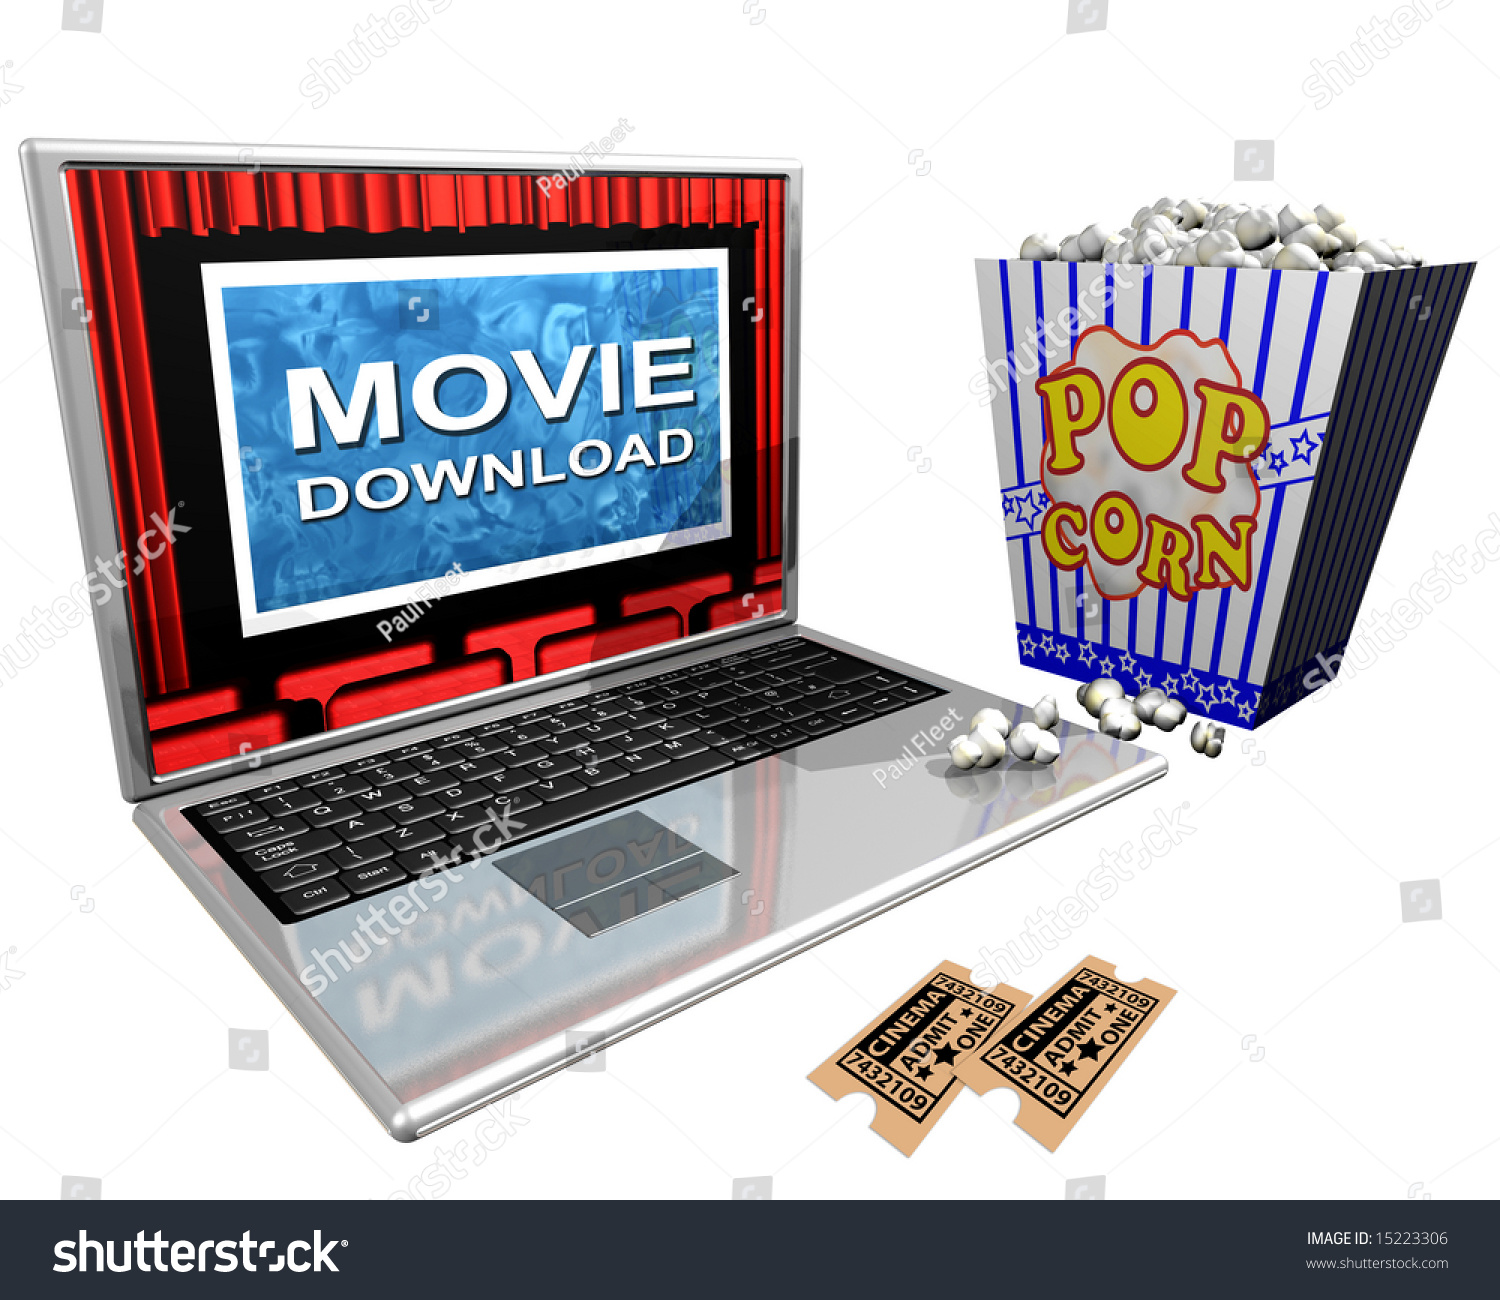 how to download movies to a laptop